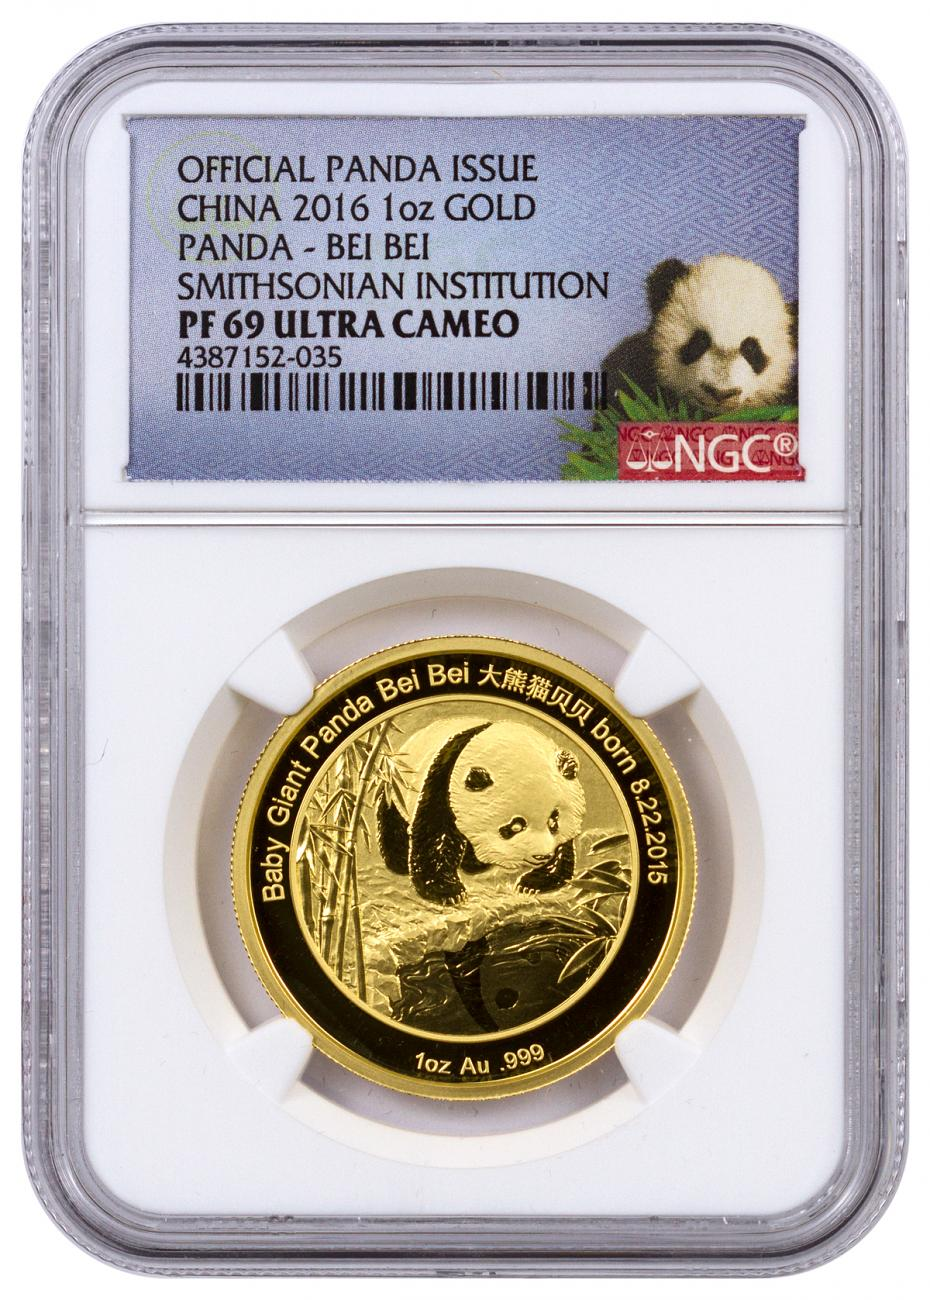 2016 China Bei Bei Smithsonian Institution Official Mint Medal 1 oz Gold Proof Medal NGC PF69 UC (Panda Label)